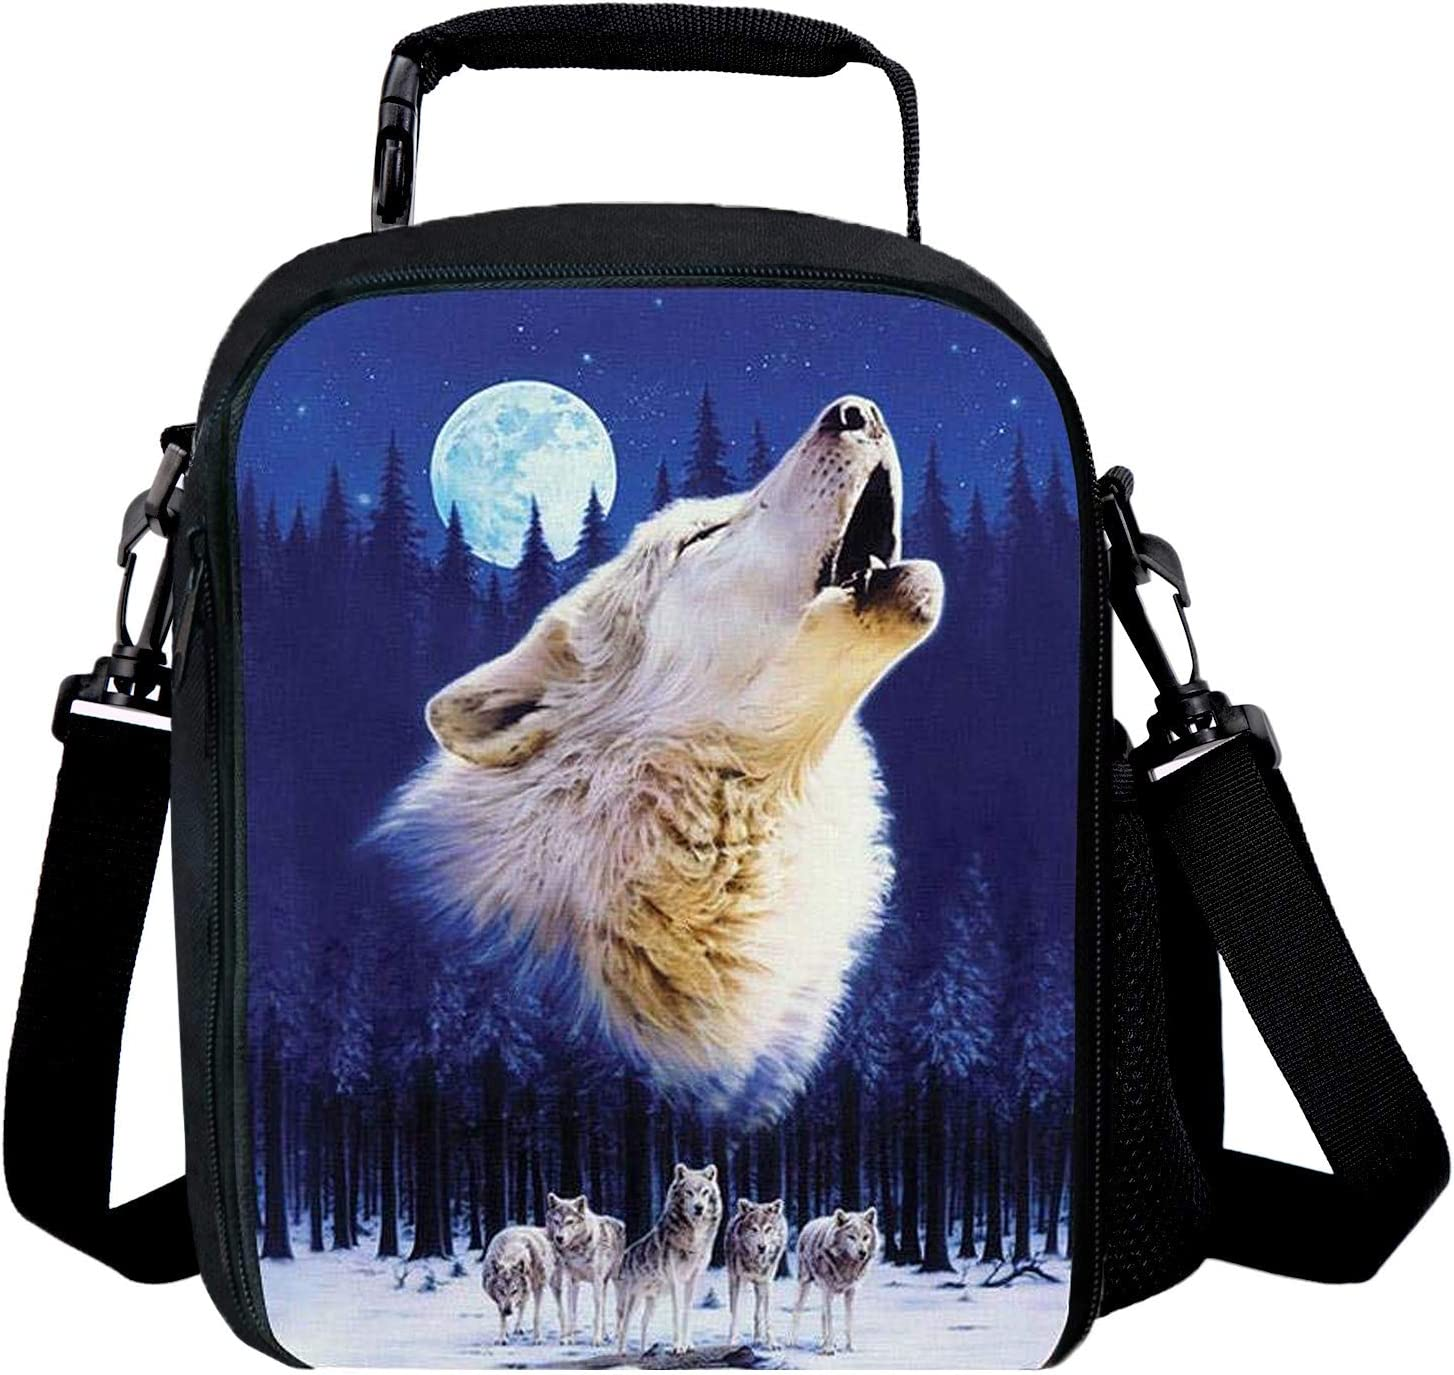 Insulating Thermal Wolf Animal Print Lunch Bags for Kids Boys Girls Washable Tote Crossbody Lunch Container Food Carrier for School Travel